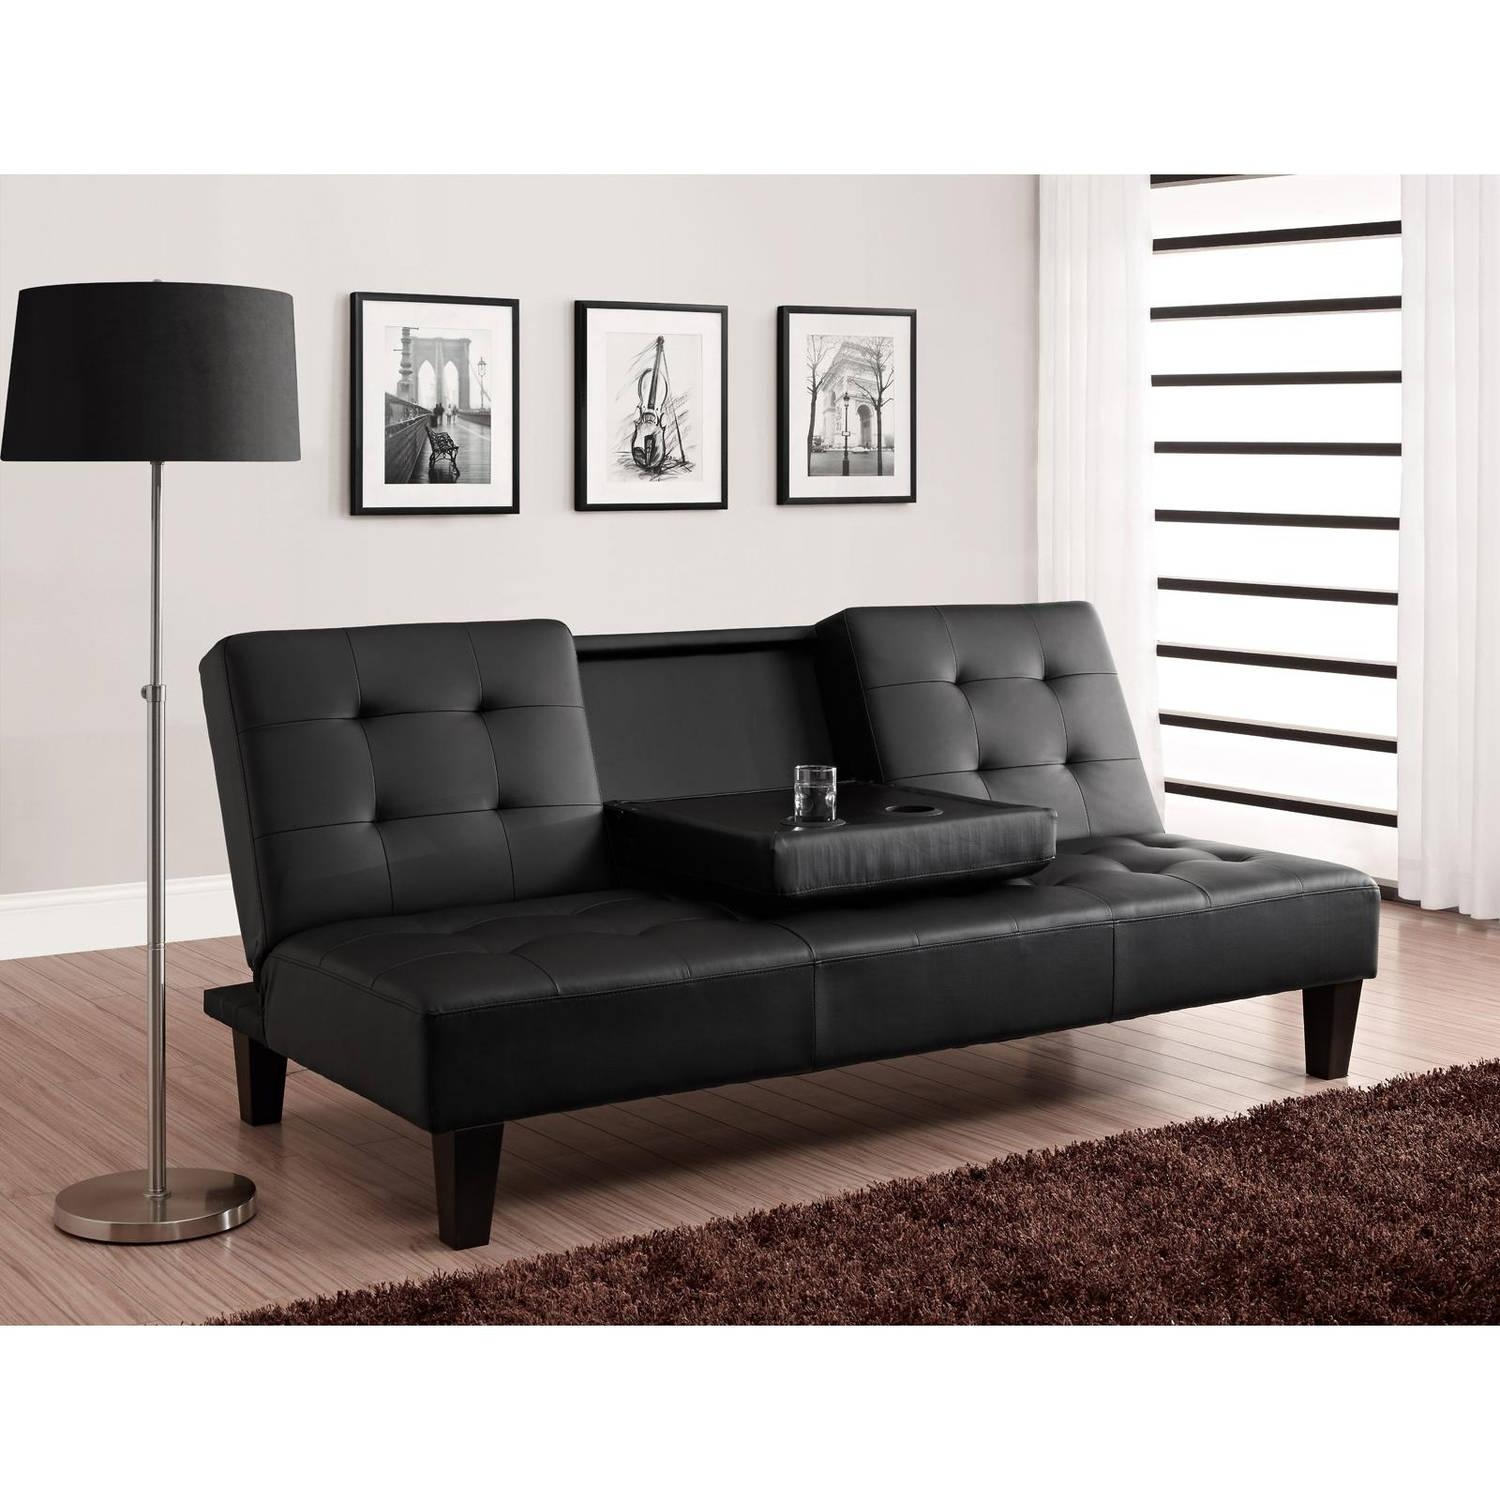 Julia Cupholder Convertible Futon, Multiple Colors – Walmart Within Convertible Futon Sofa Beds (Image 14 of 20)